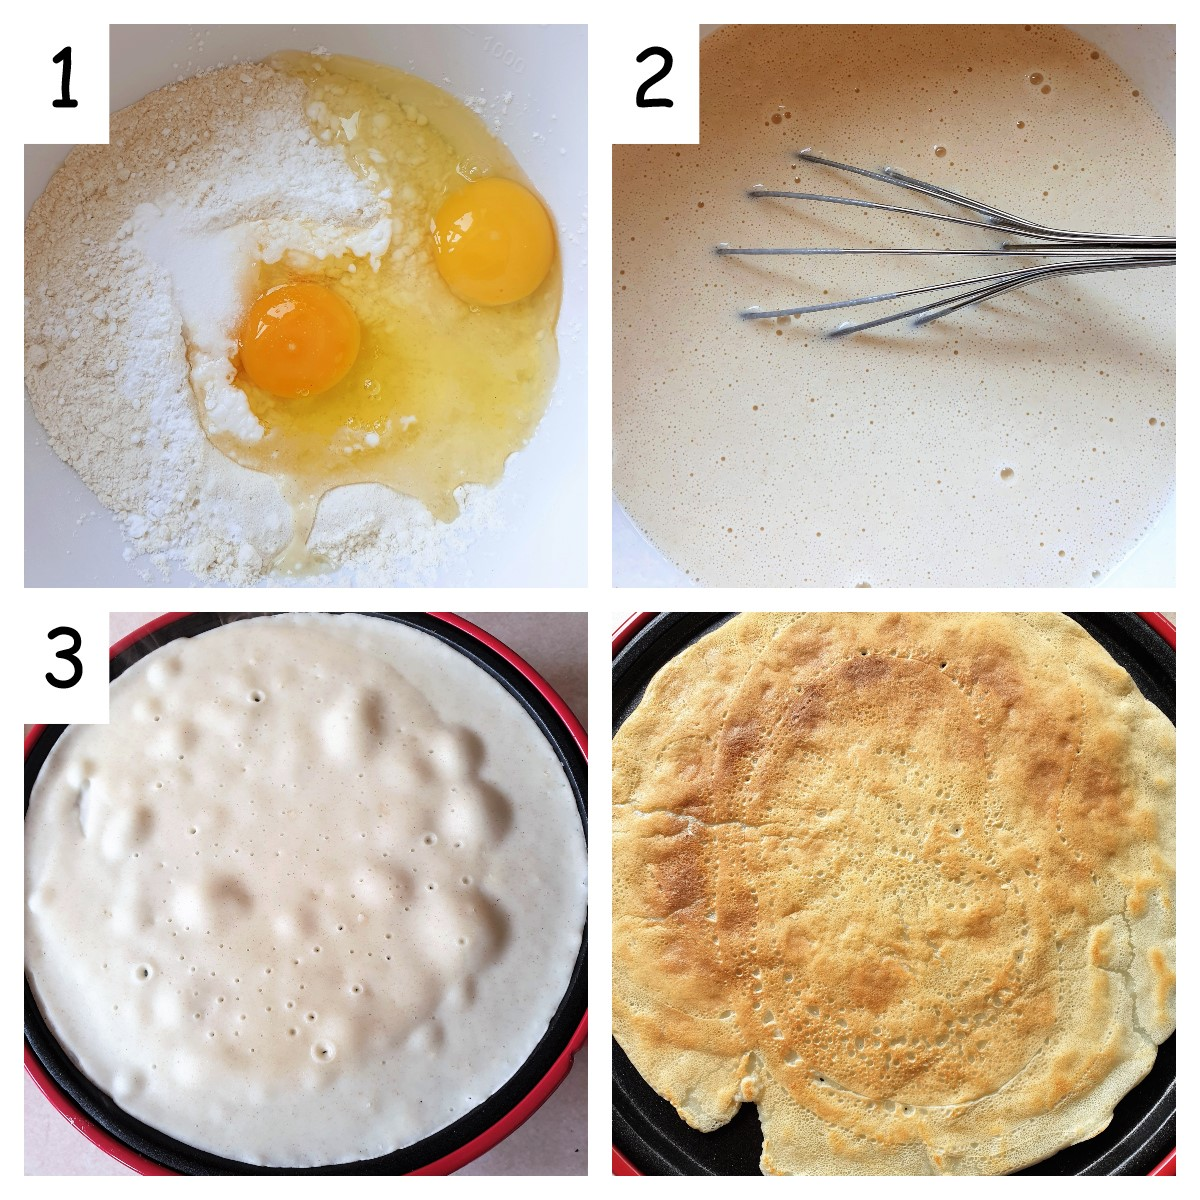 Collage showing steps for making crepes